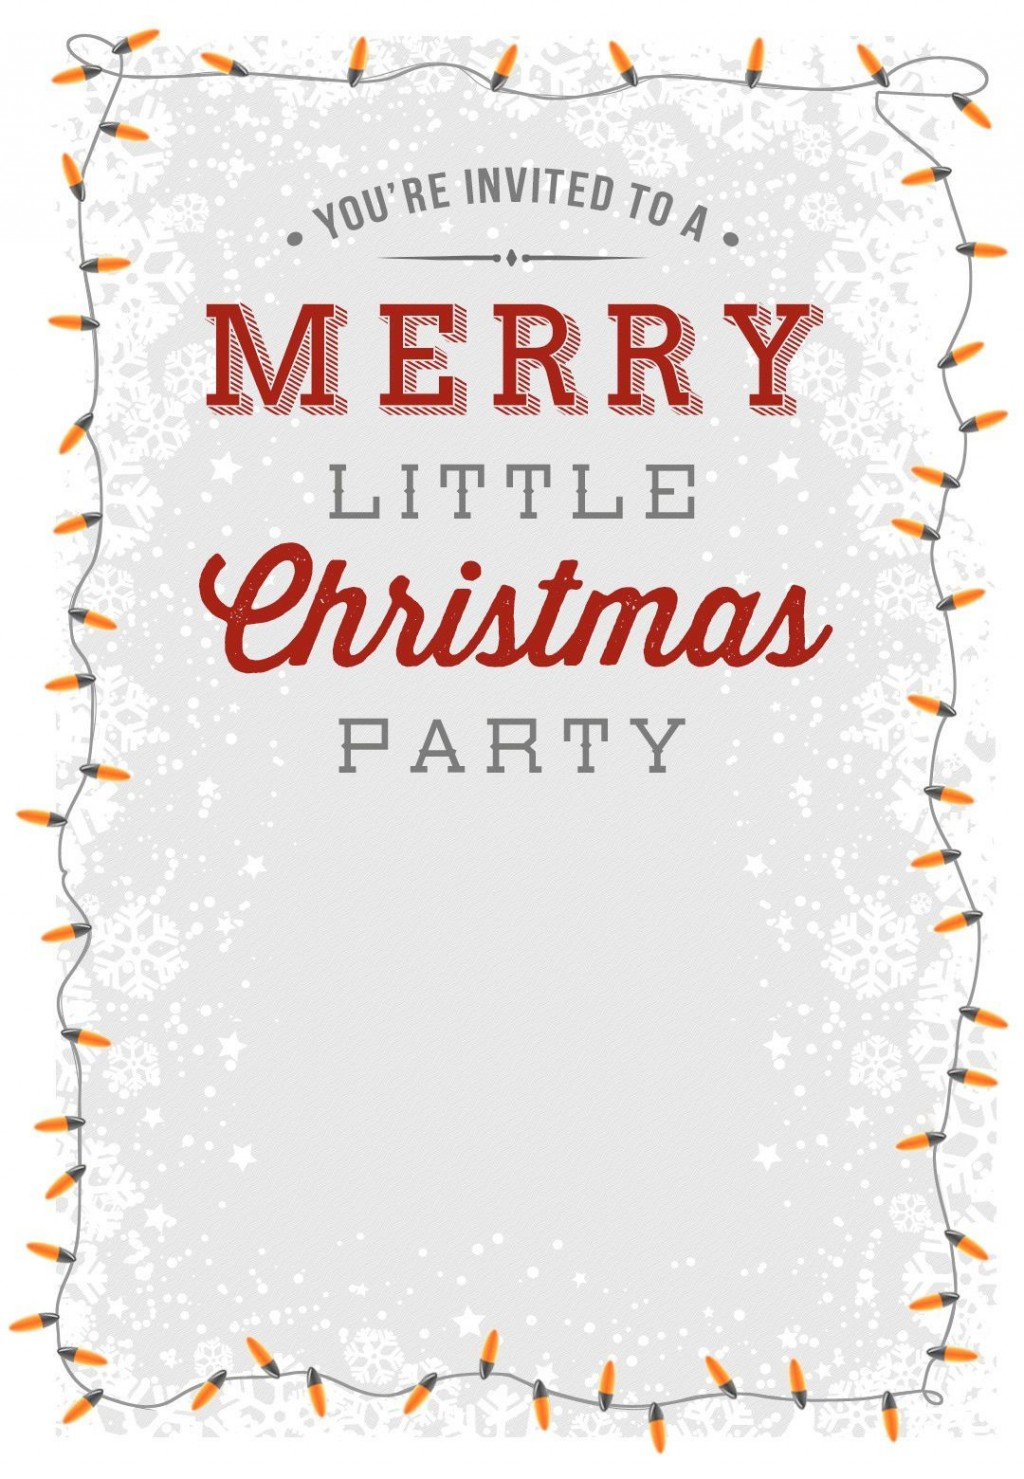 006 Formidable Xma Party Invite Template Free Example  Holiday Invitation Word Printable Office Christma DownloadLarge